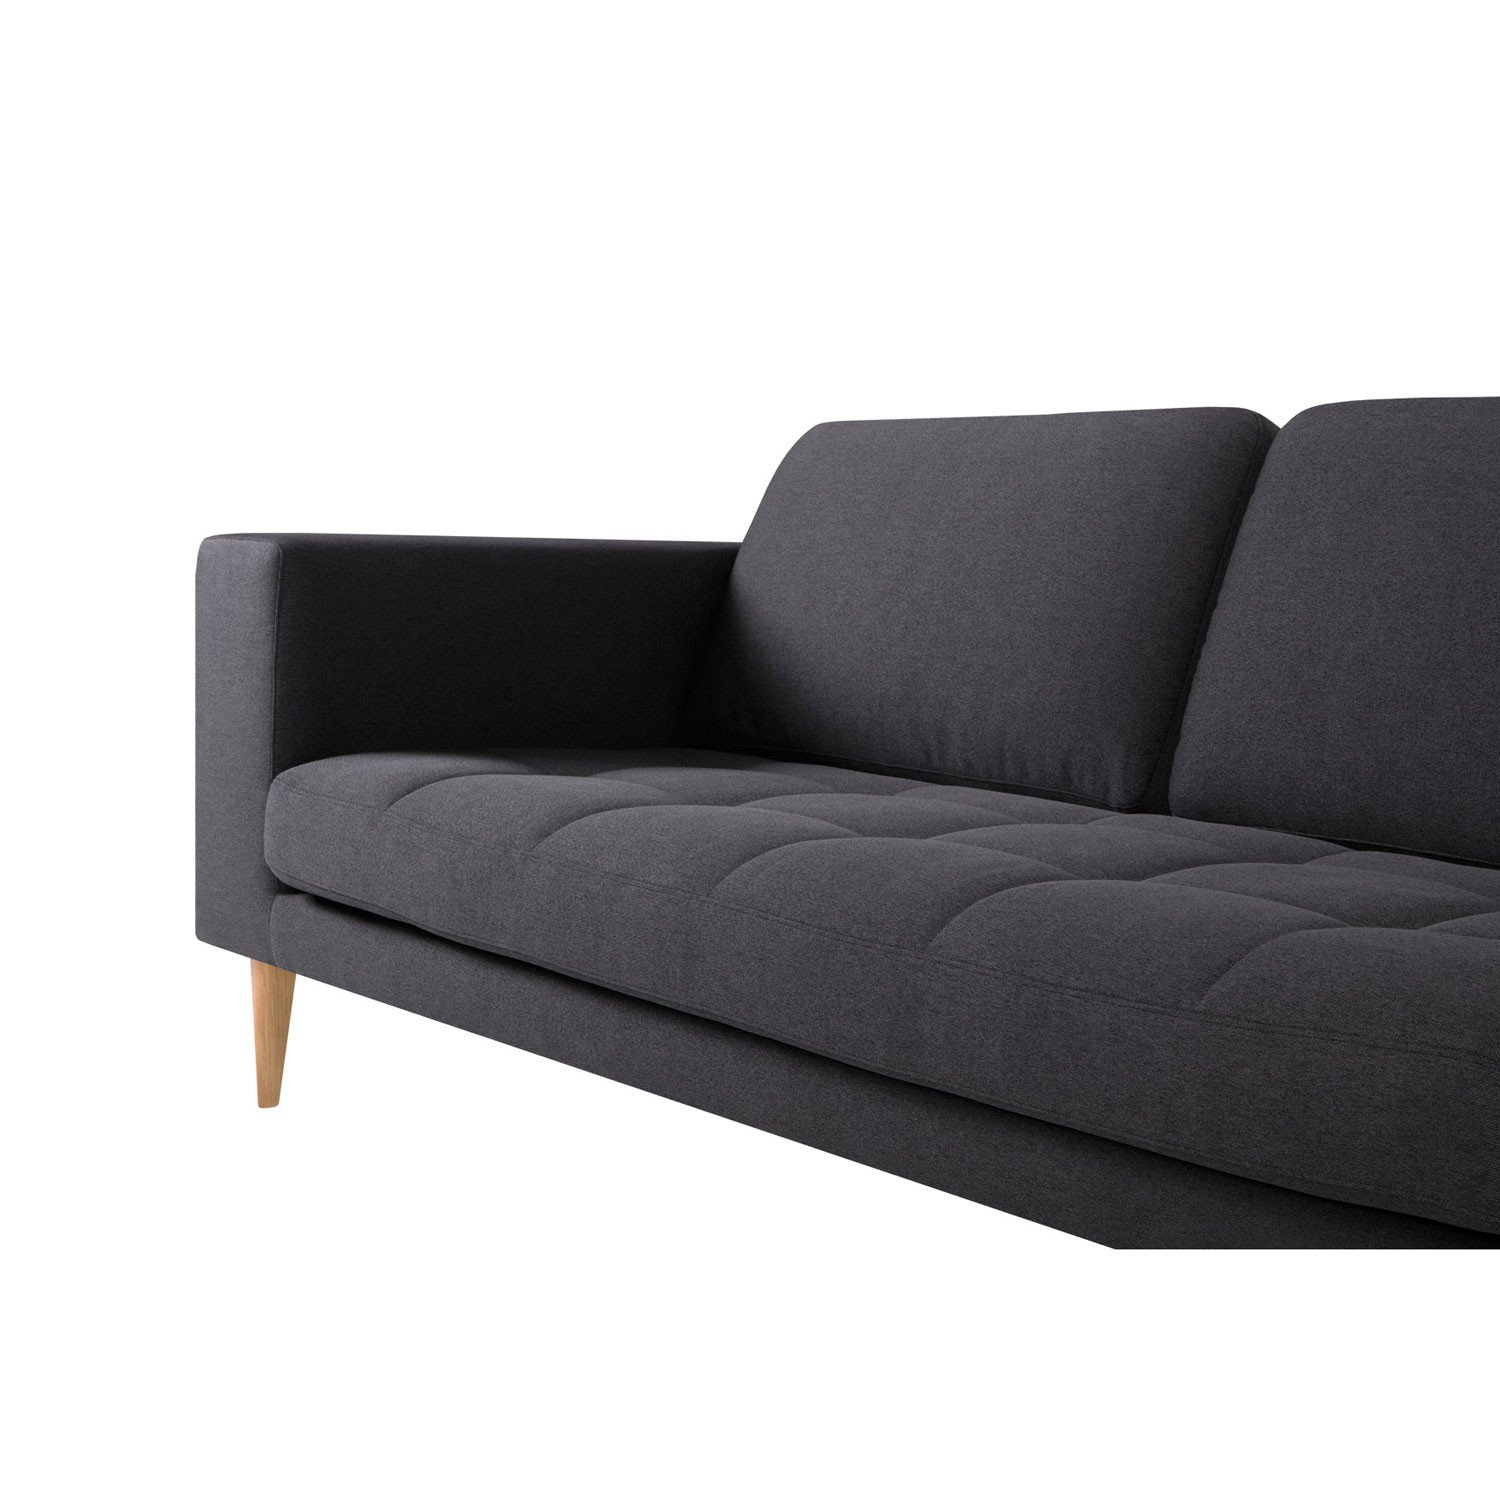 Milano 3 Seater Sofa | Aif London Intended For London Dark Grey Sofa Chairs (Image 15 of 25)